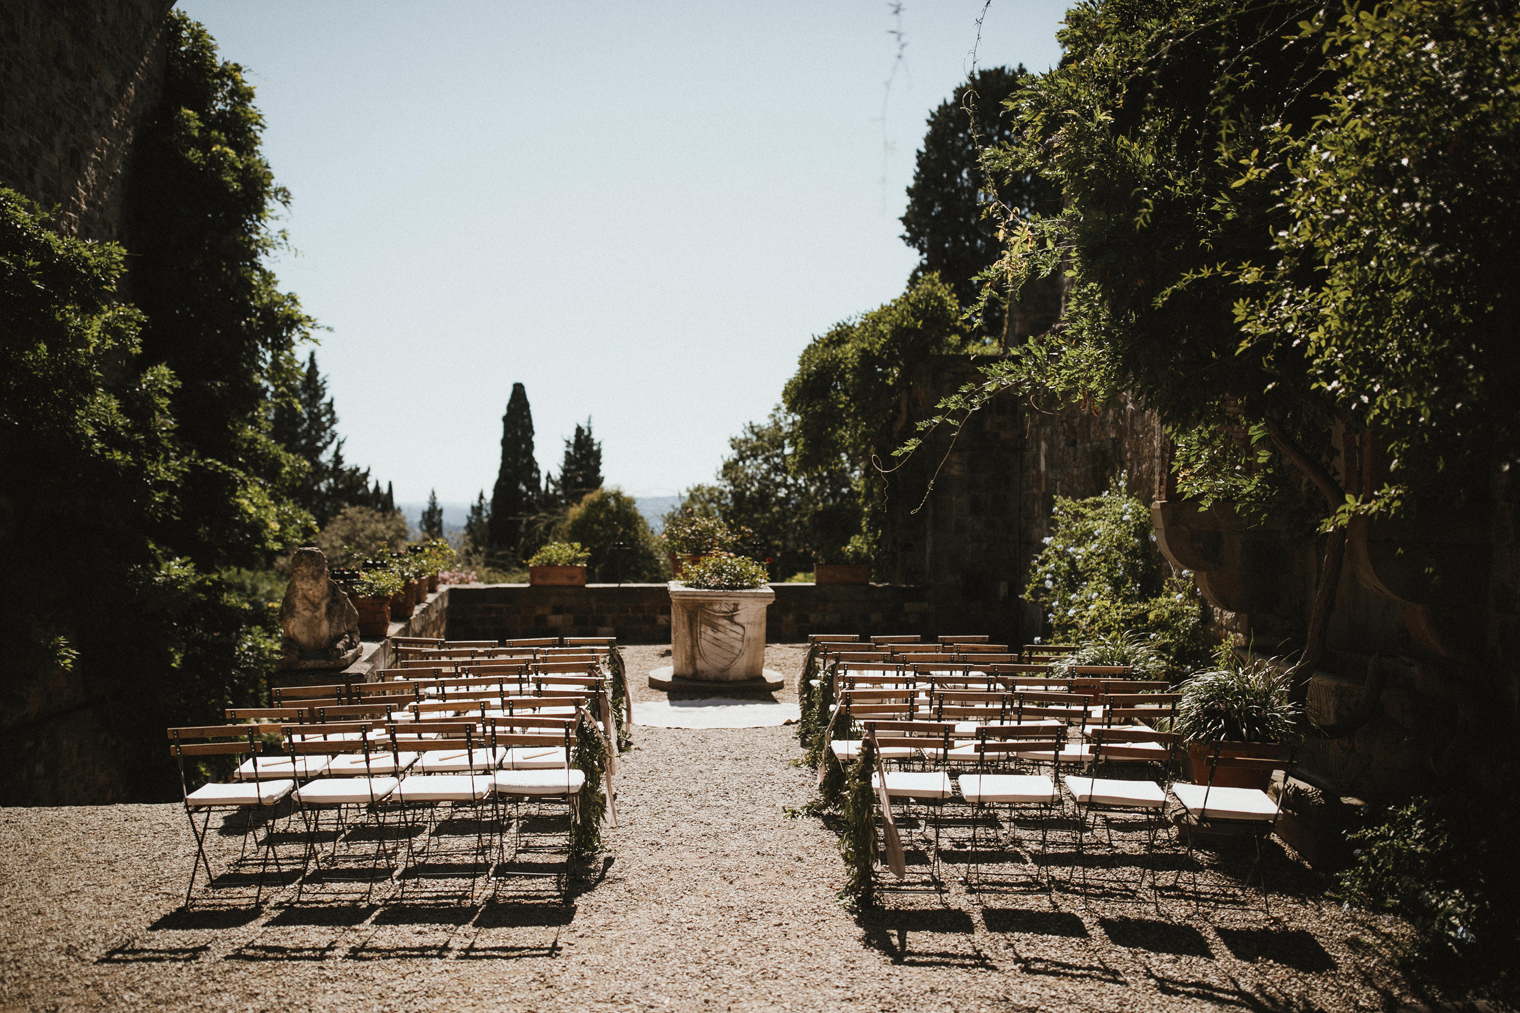 Ceremony venue at Castello Di Vincigliata, Fiesole, Tuscany